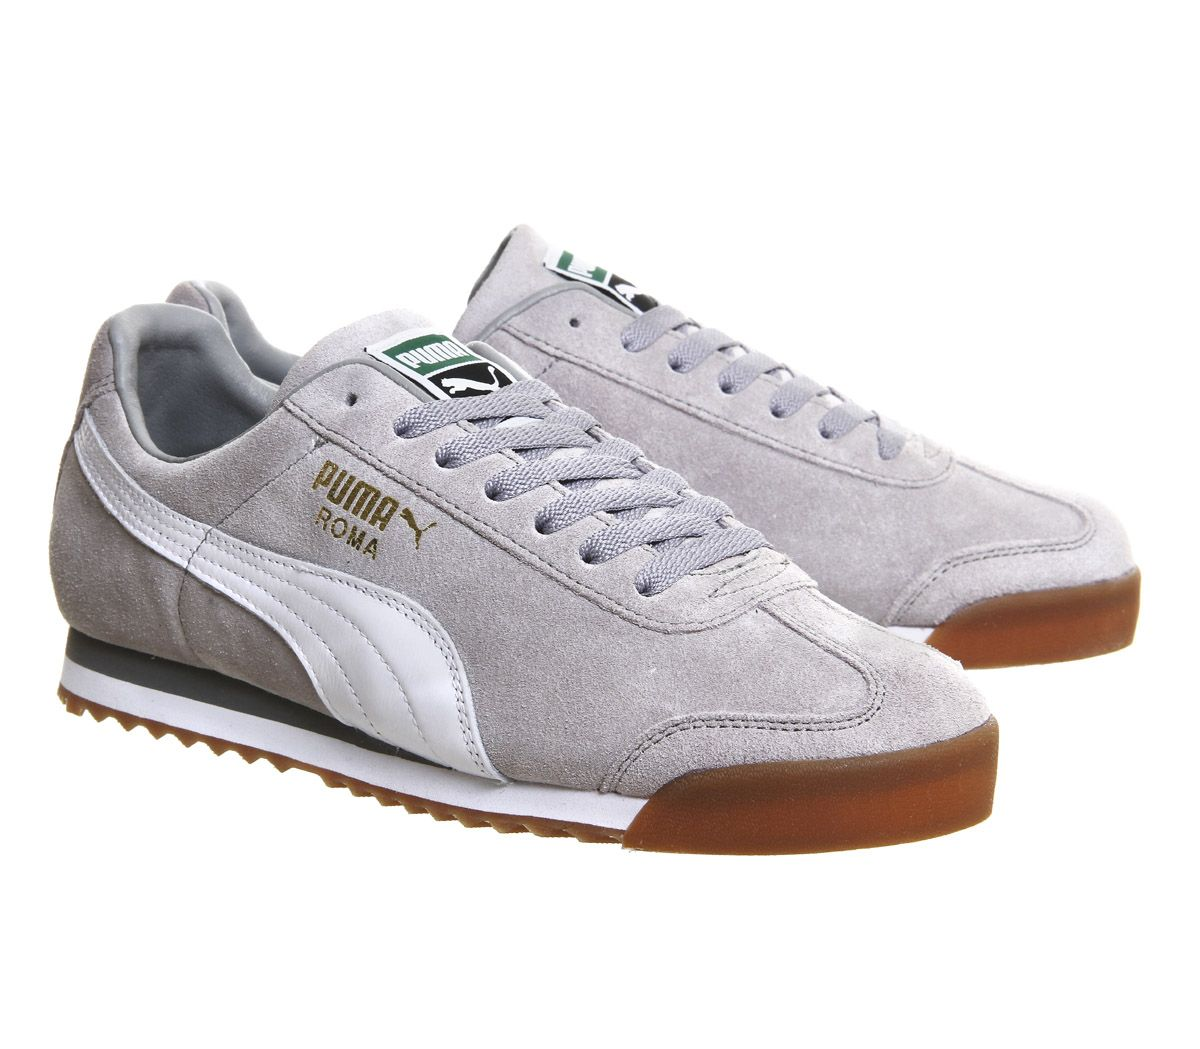 Puma Roma Grey White Gum Exclusive - His trainers  080ee9470